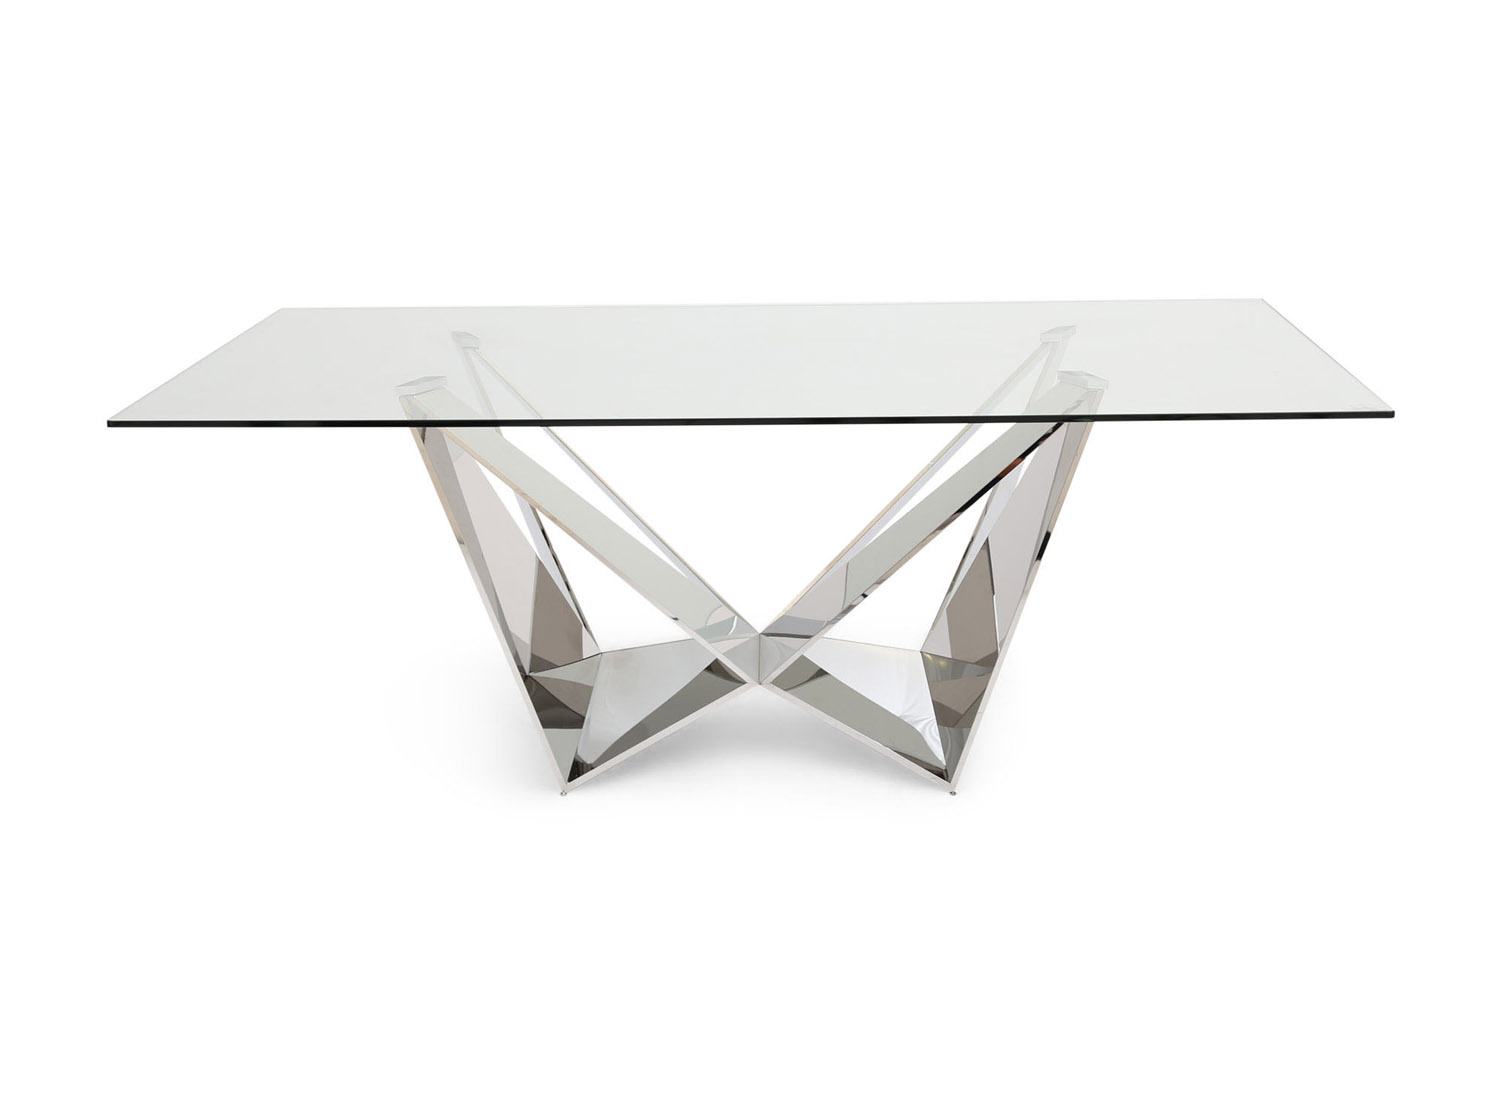 https://www.firstfurniture.co.uk/pub/media/catalog/product/f/l/florentina_dining_table_6.jpg